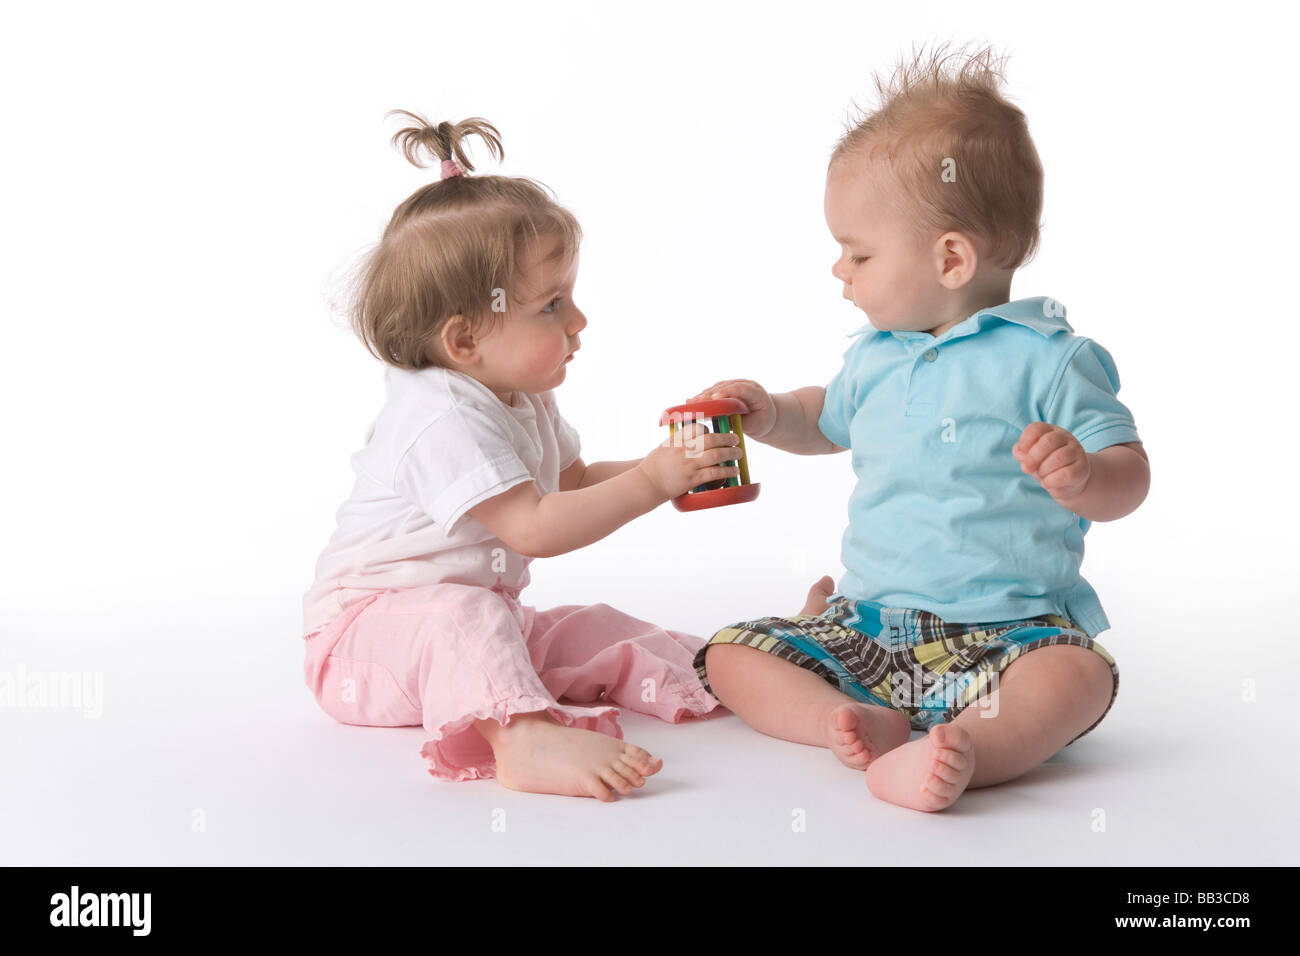 Two toddlers playing with a toy - Stock Image